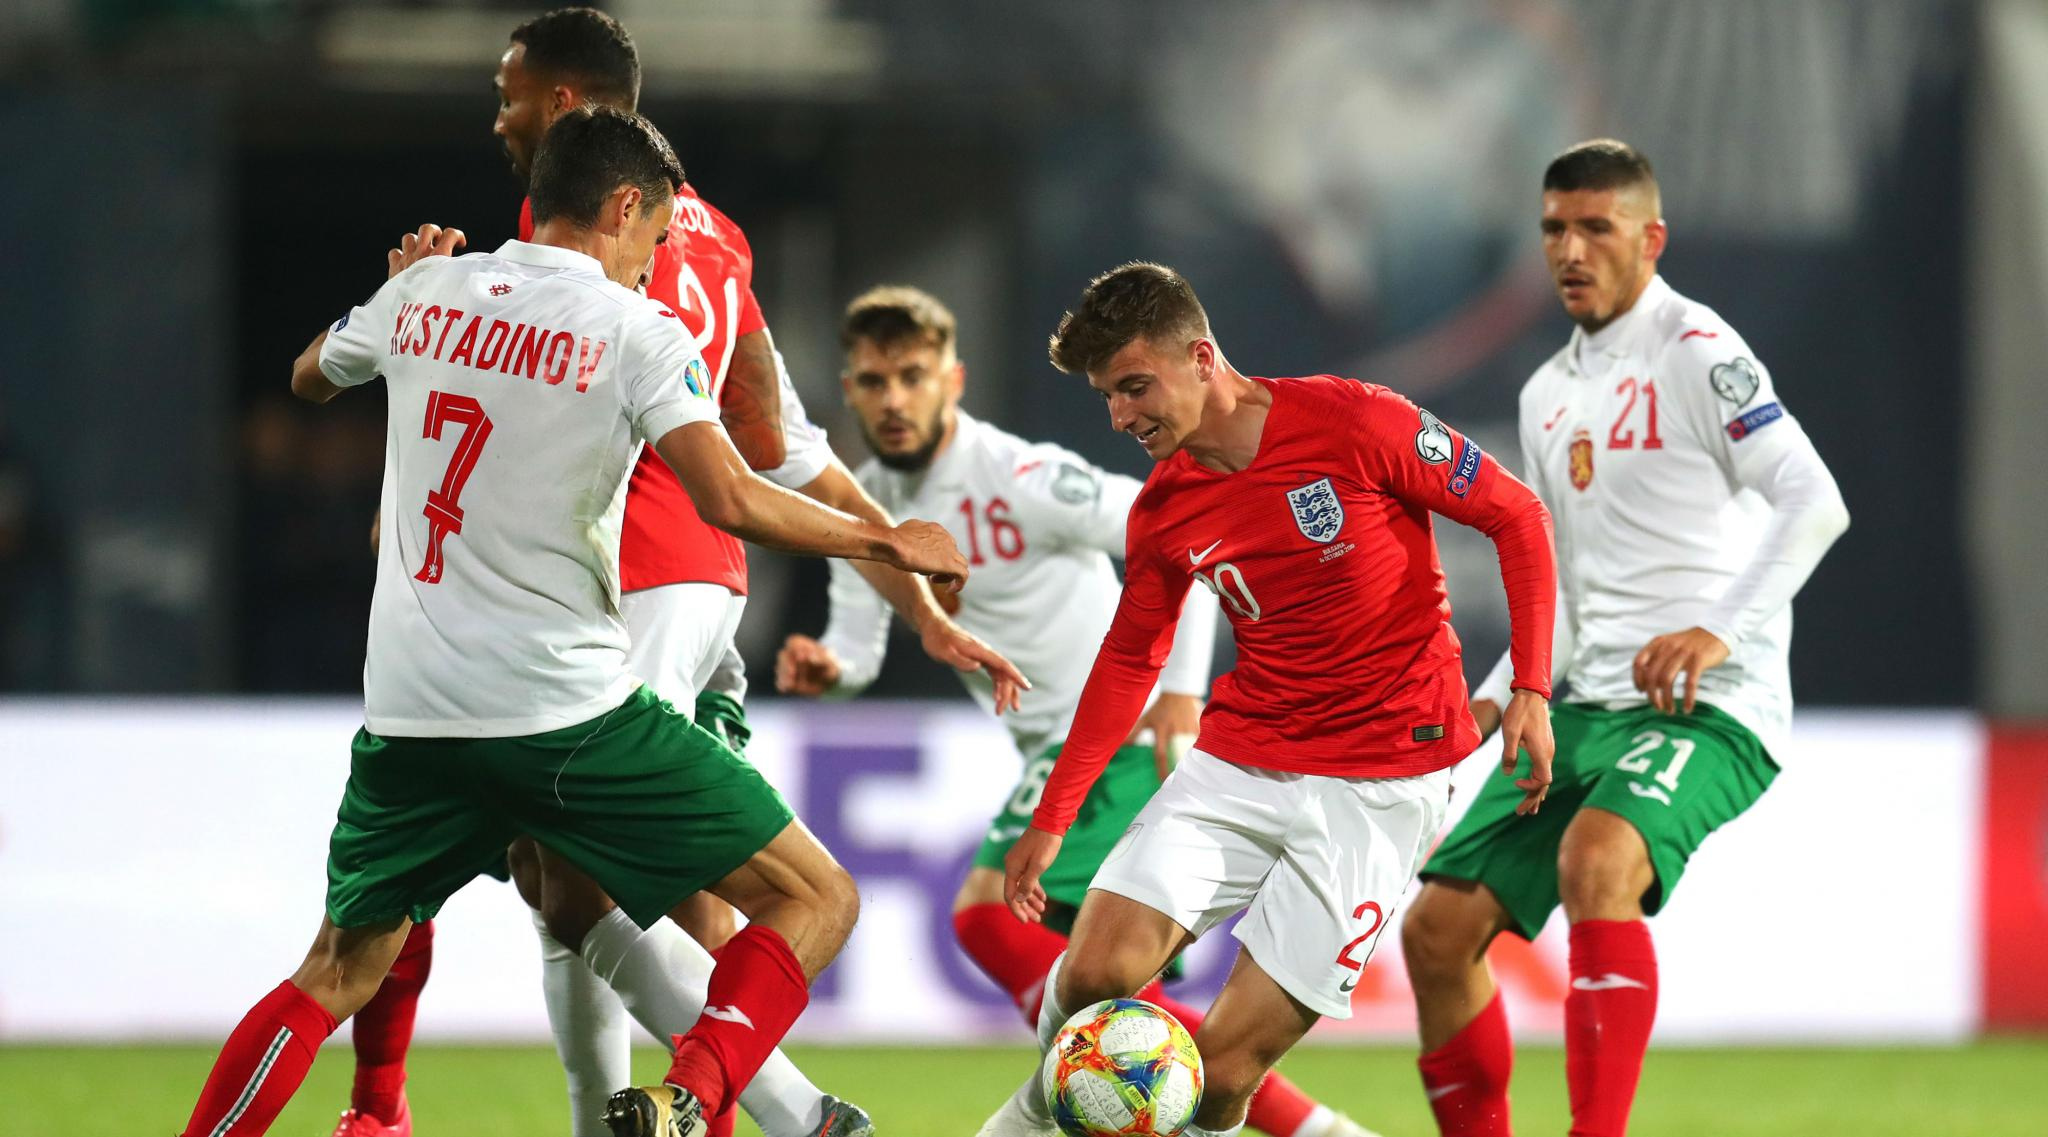 Bulgarian Football Chief Borislav Mihaylov Resigns After England Players Hurled with Racist Comments During Euro 2020 Qualifier Match